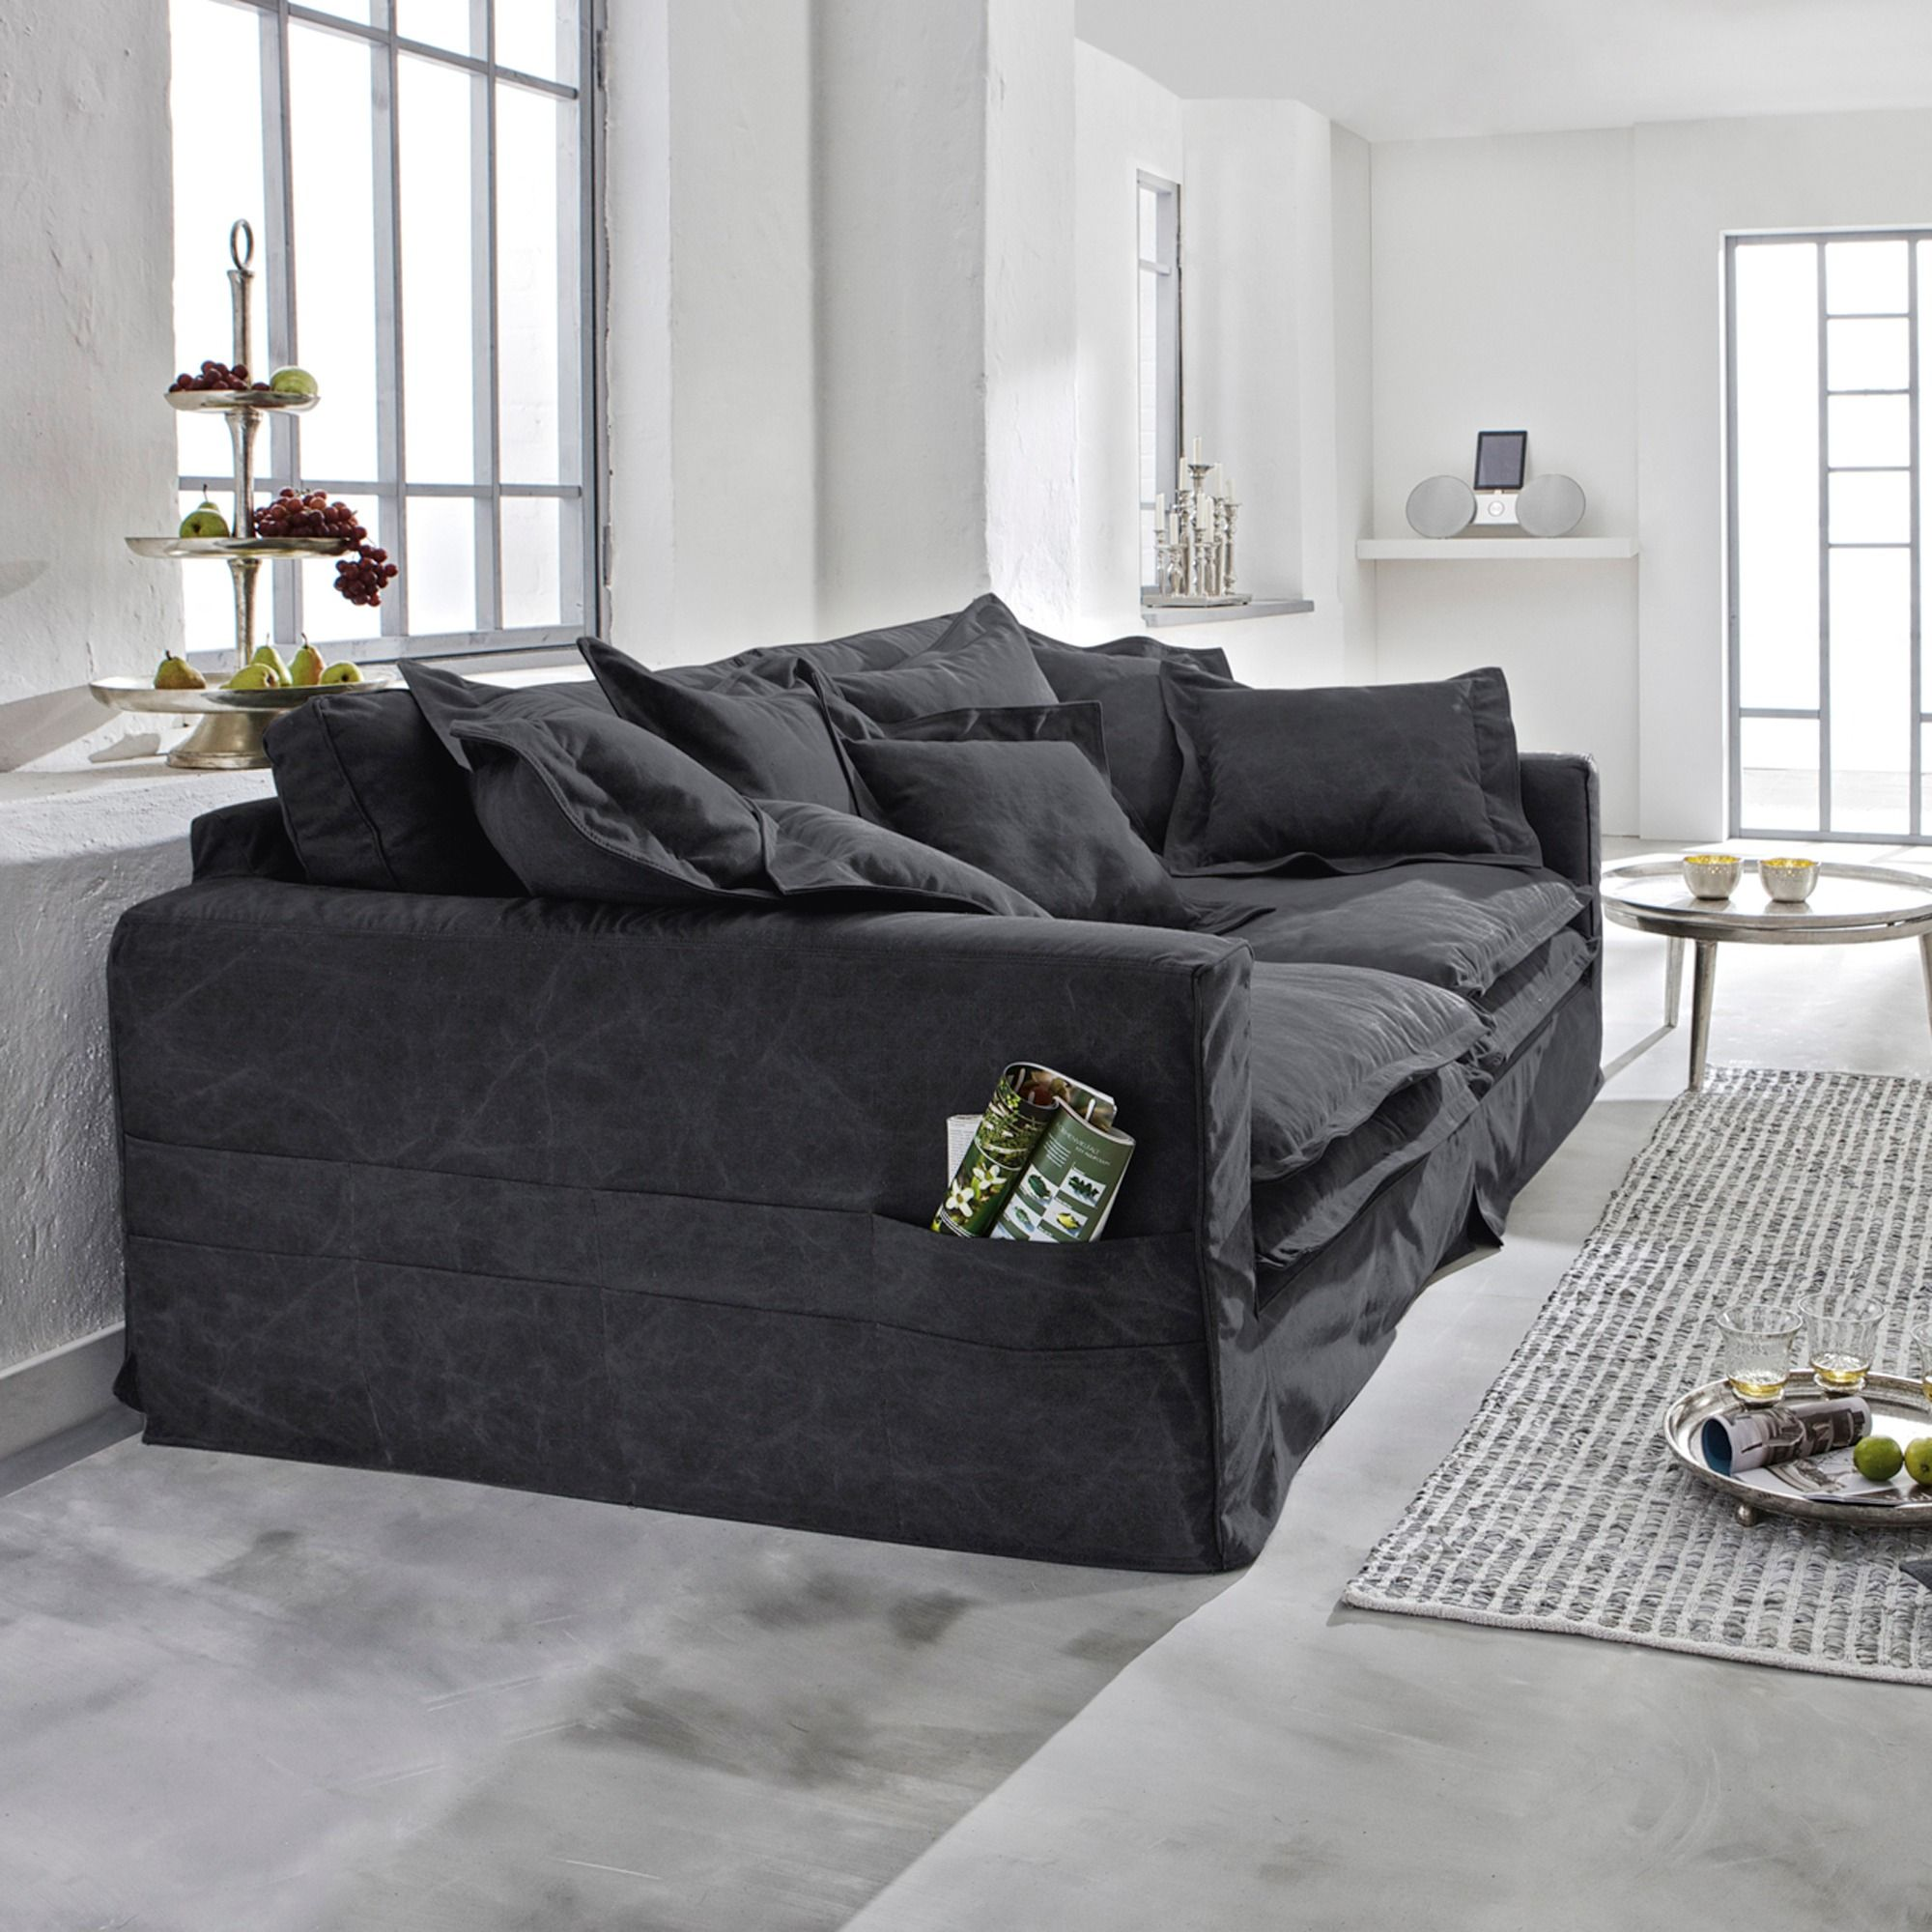 xxl sofa carcassonne online kaufen mirabeau in 2019 living room sofa cozy couch living